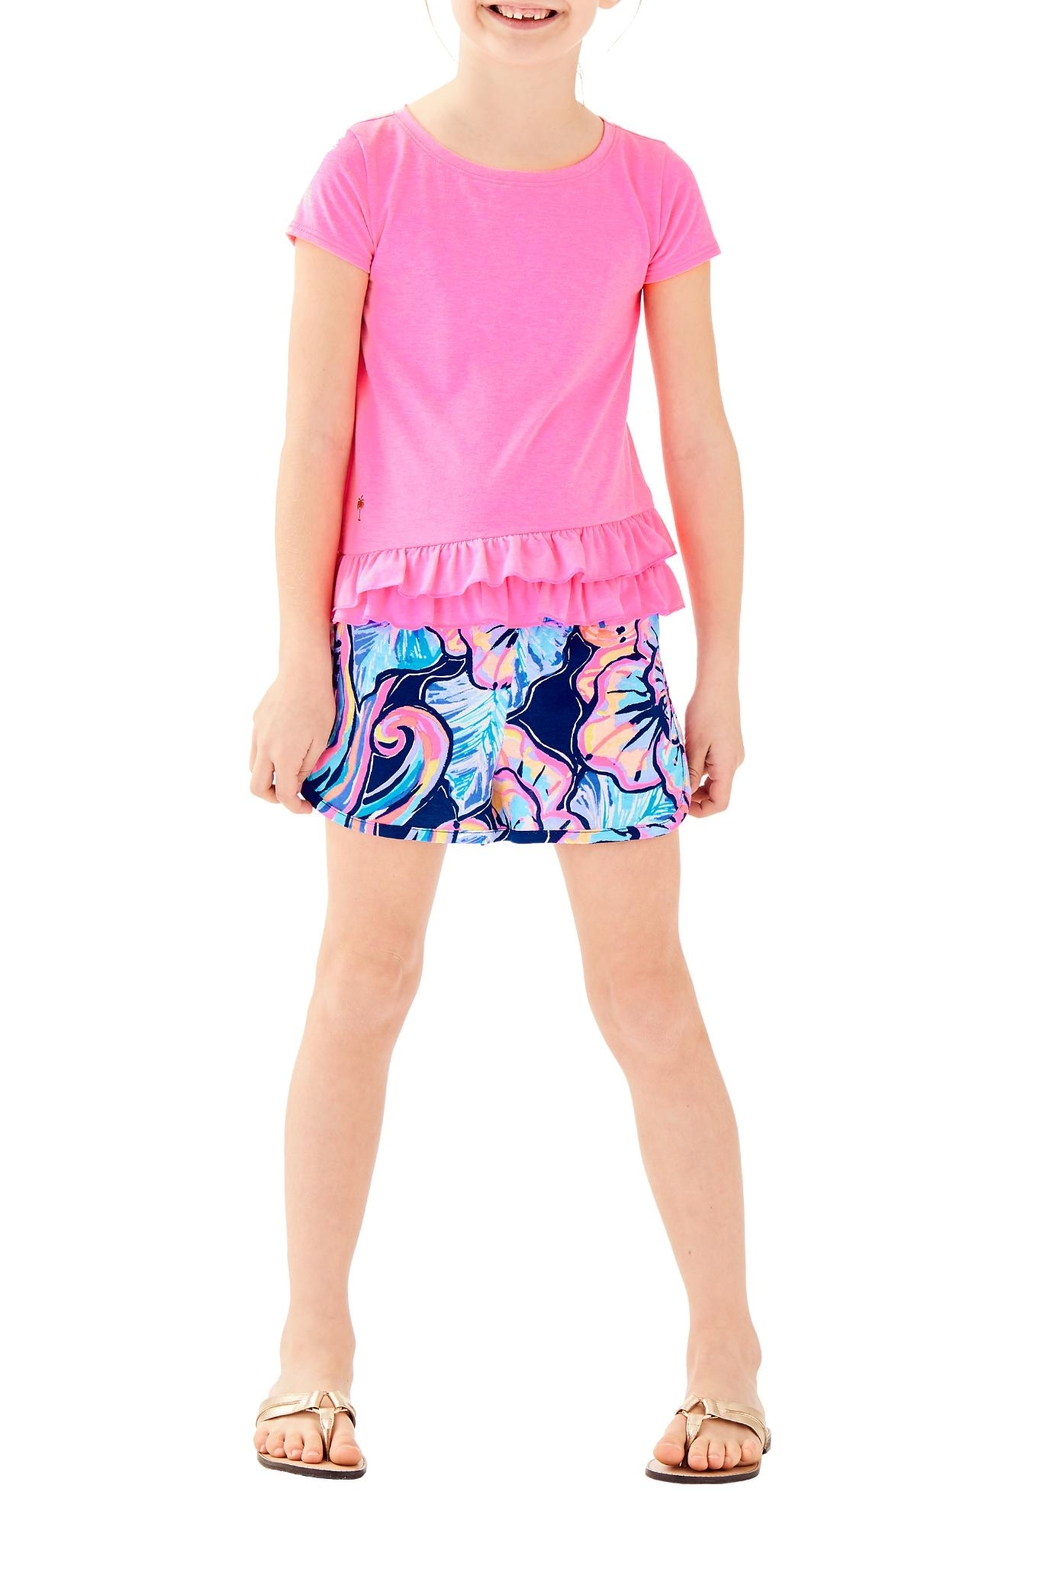 Lilly Pulitzer Girls Leightan Top - Main Image